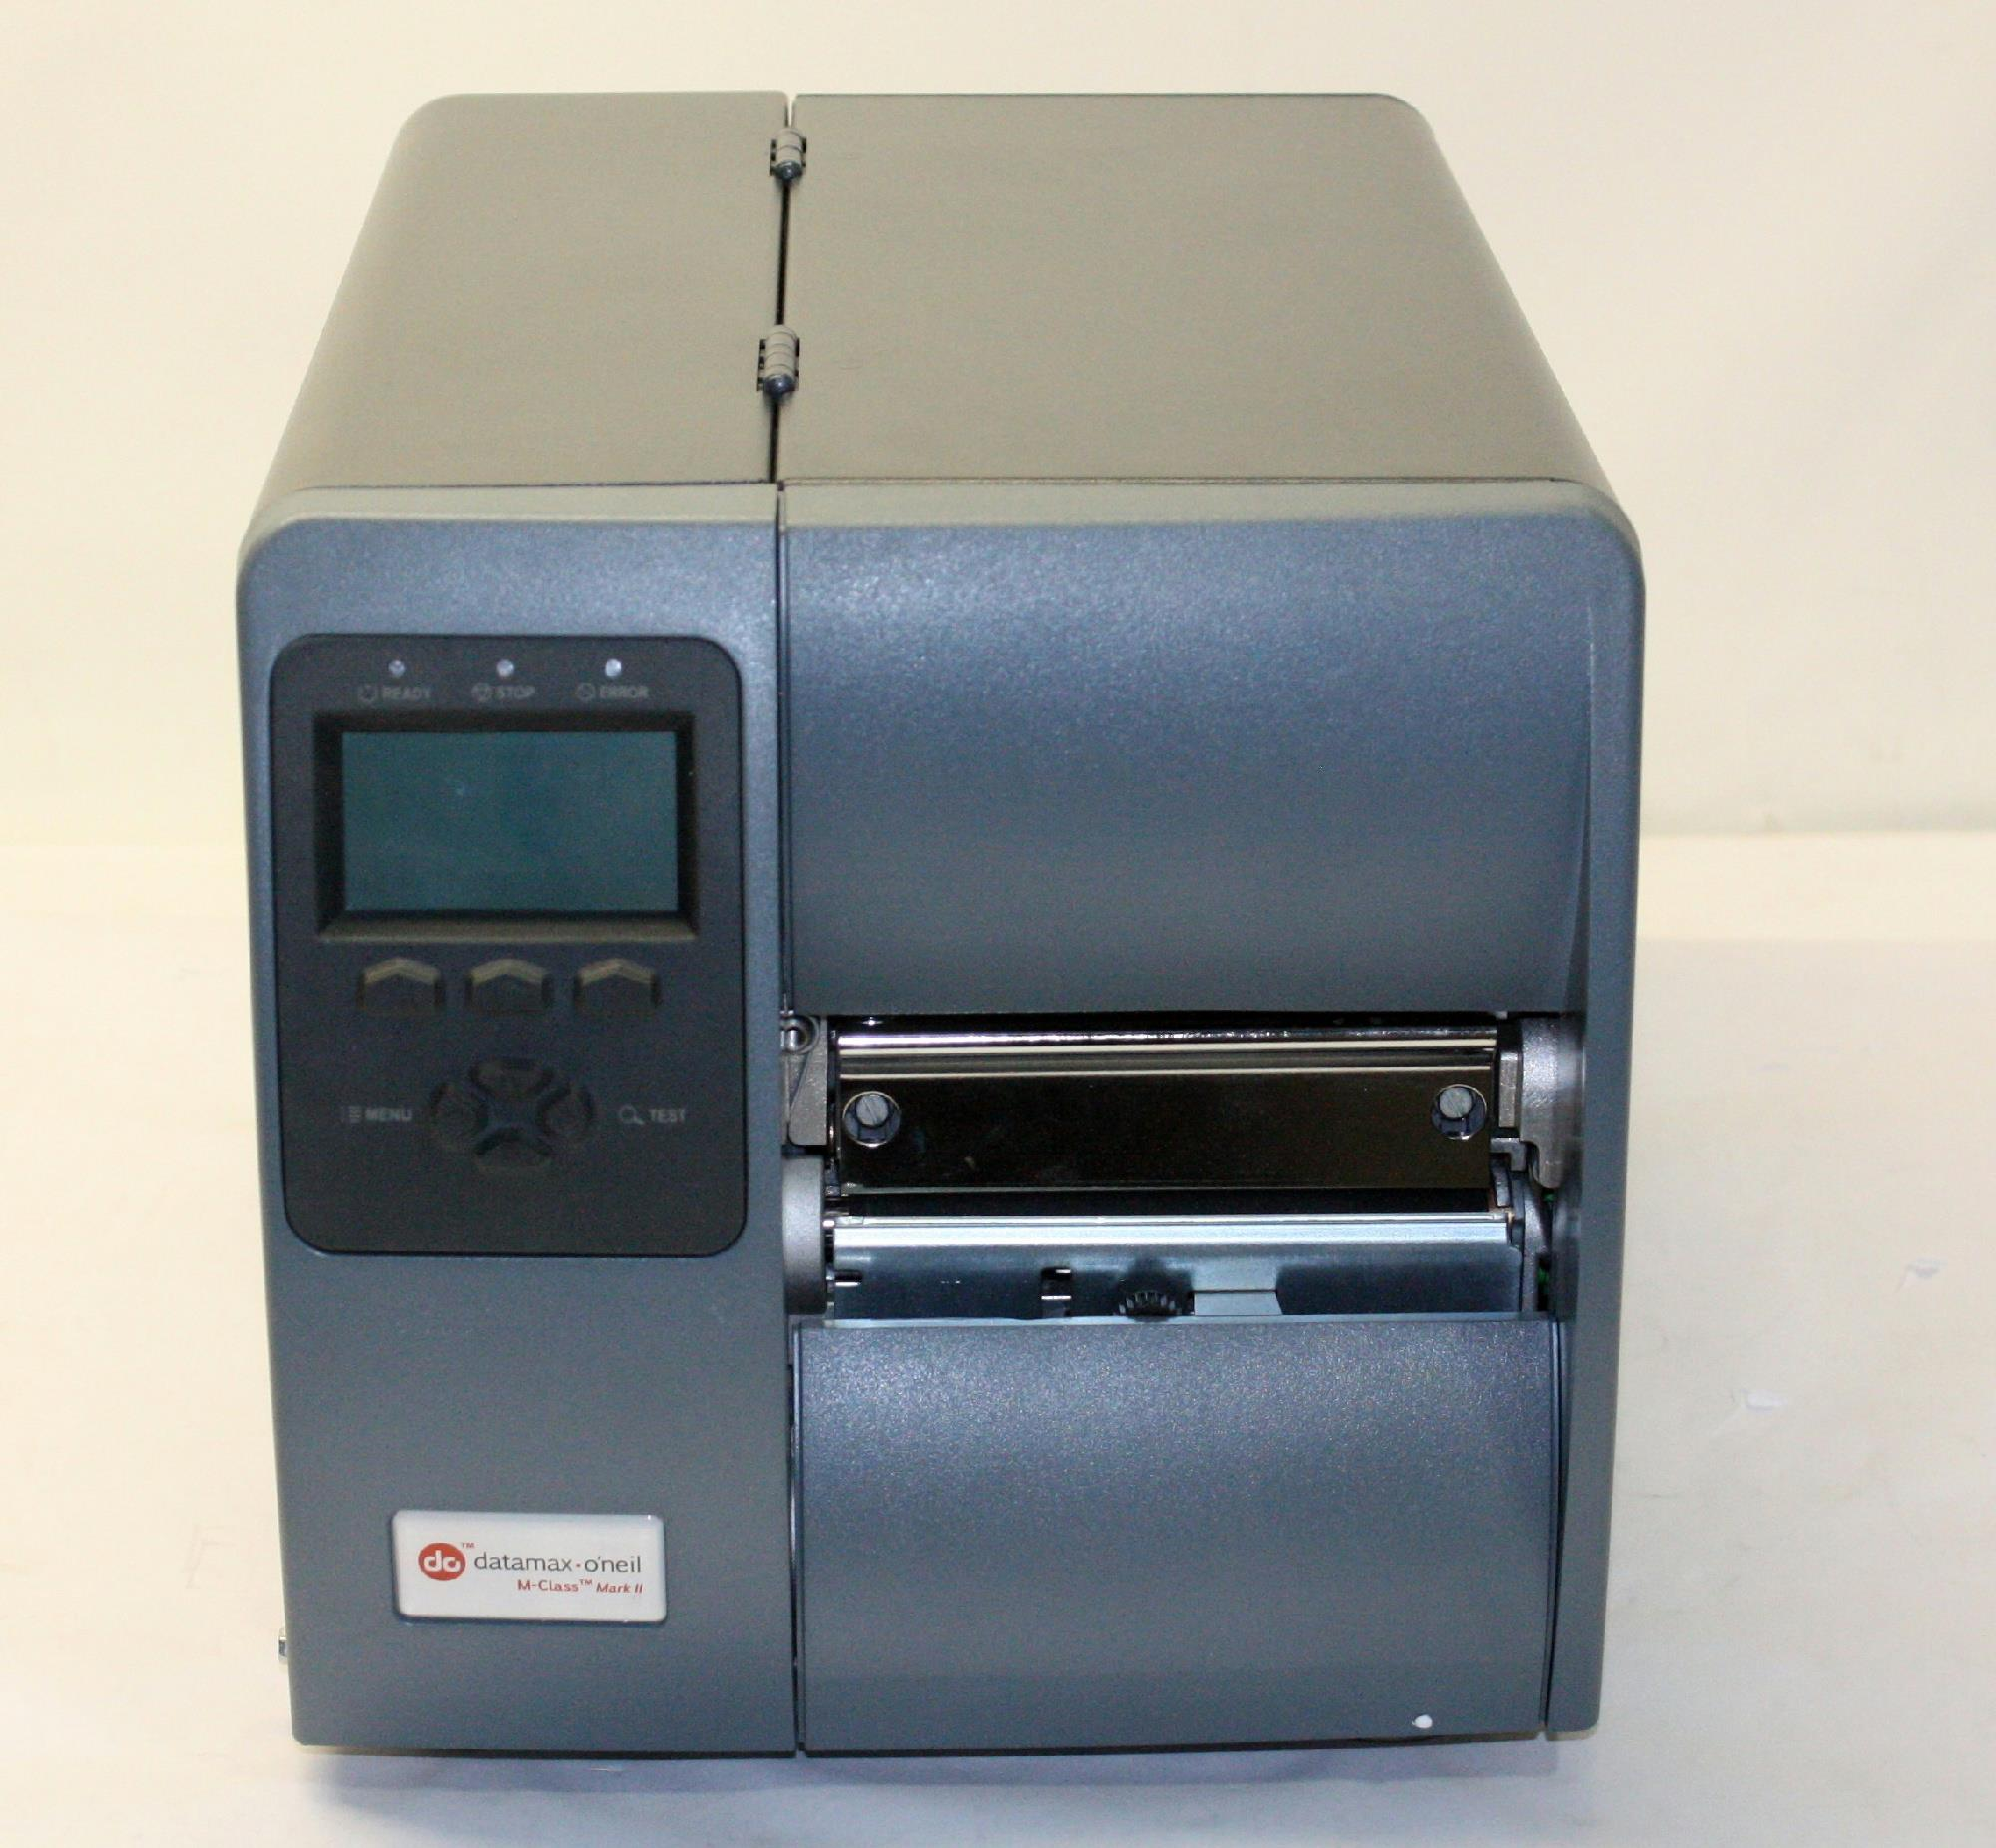 Datamax-ONeil I Barcode Printer Industrial Barcode Printers TPI